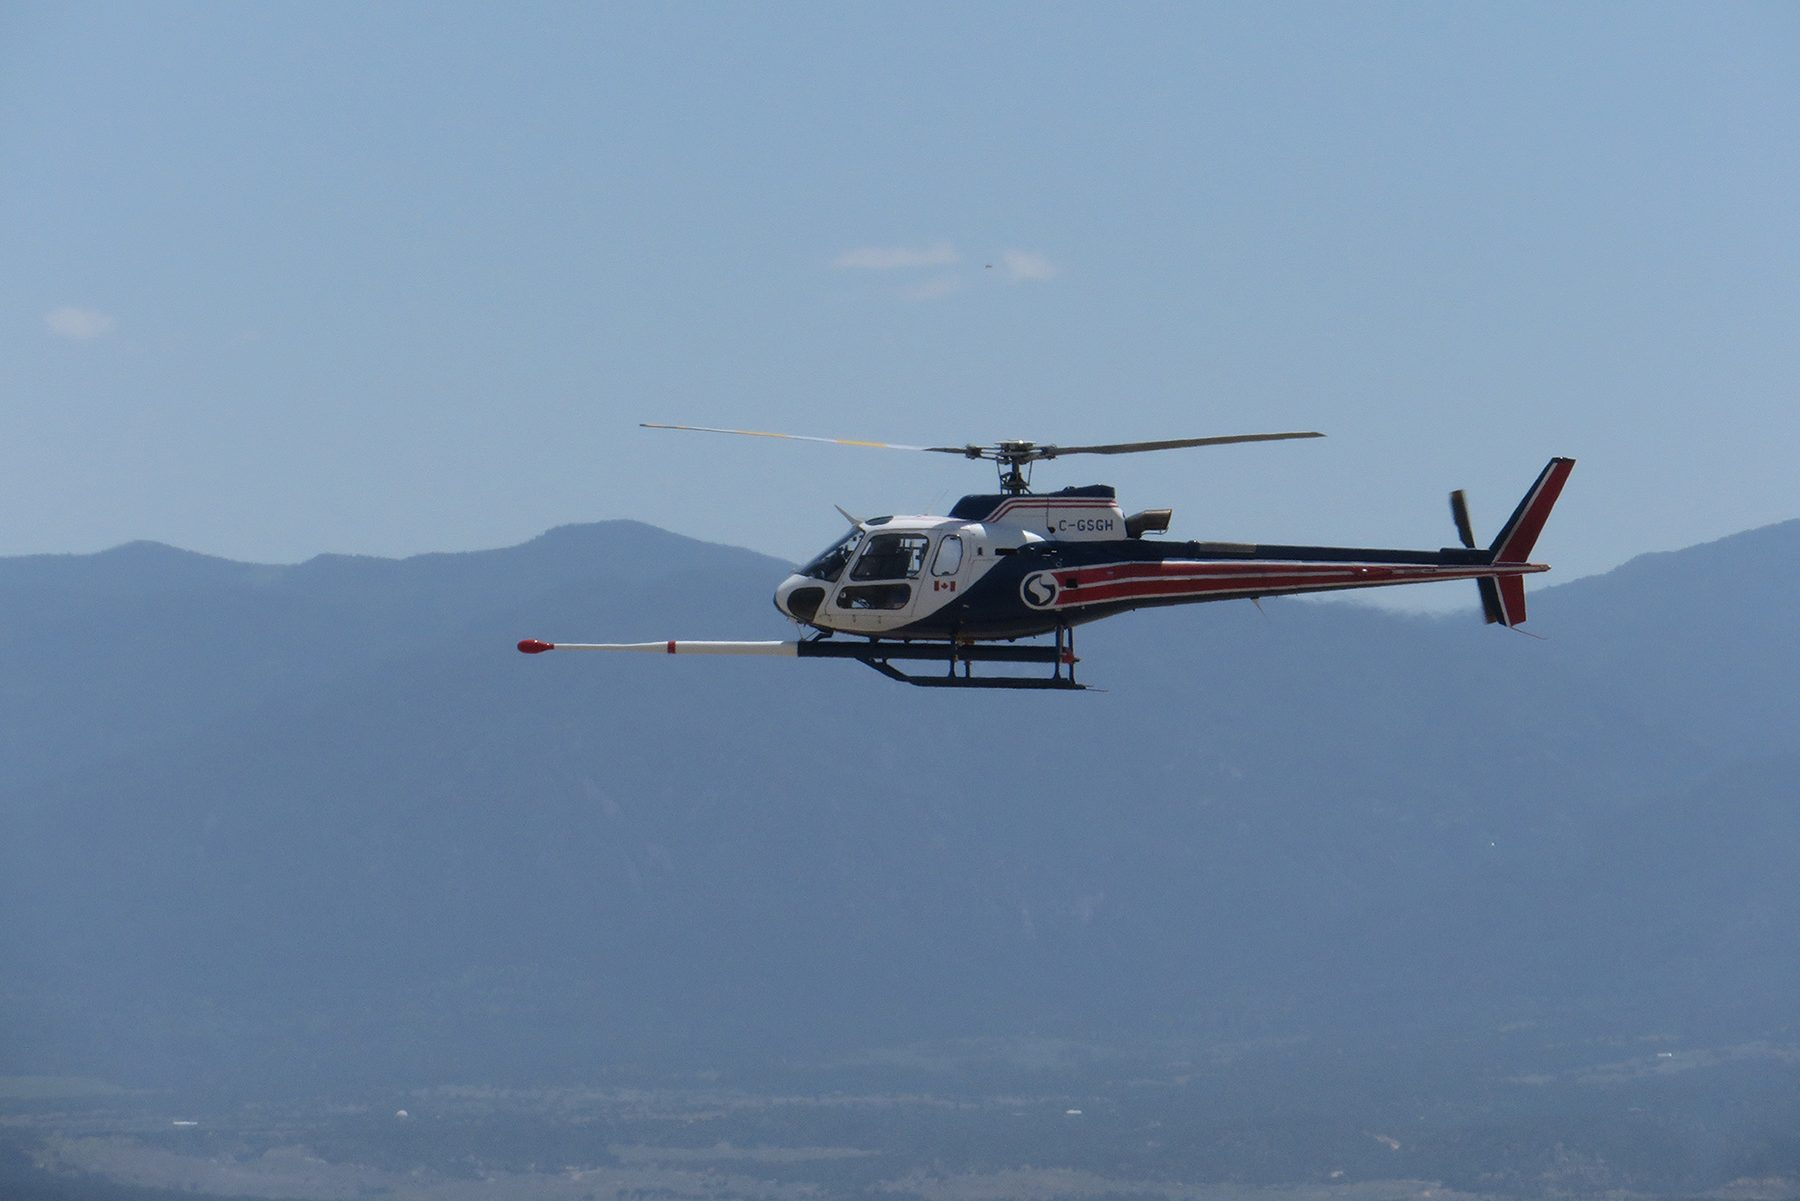 A low-flying helicopter surveys an area near the Wet Mountains.